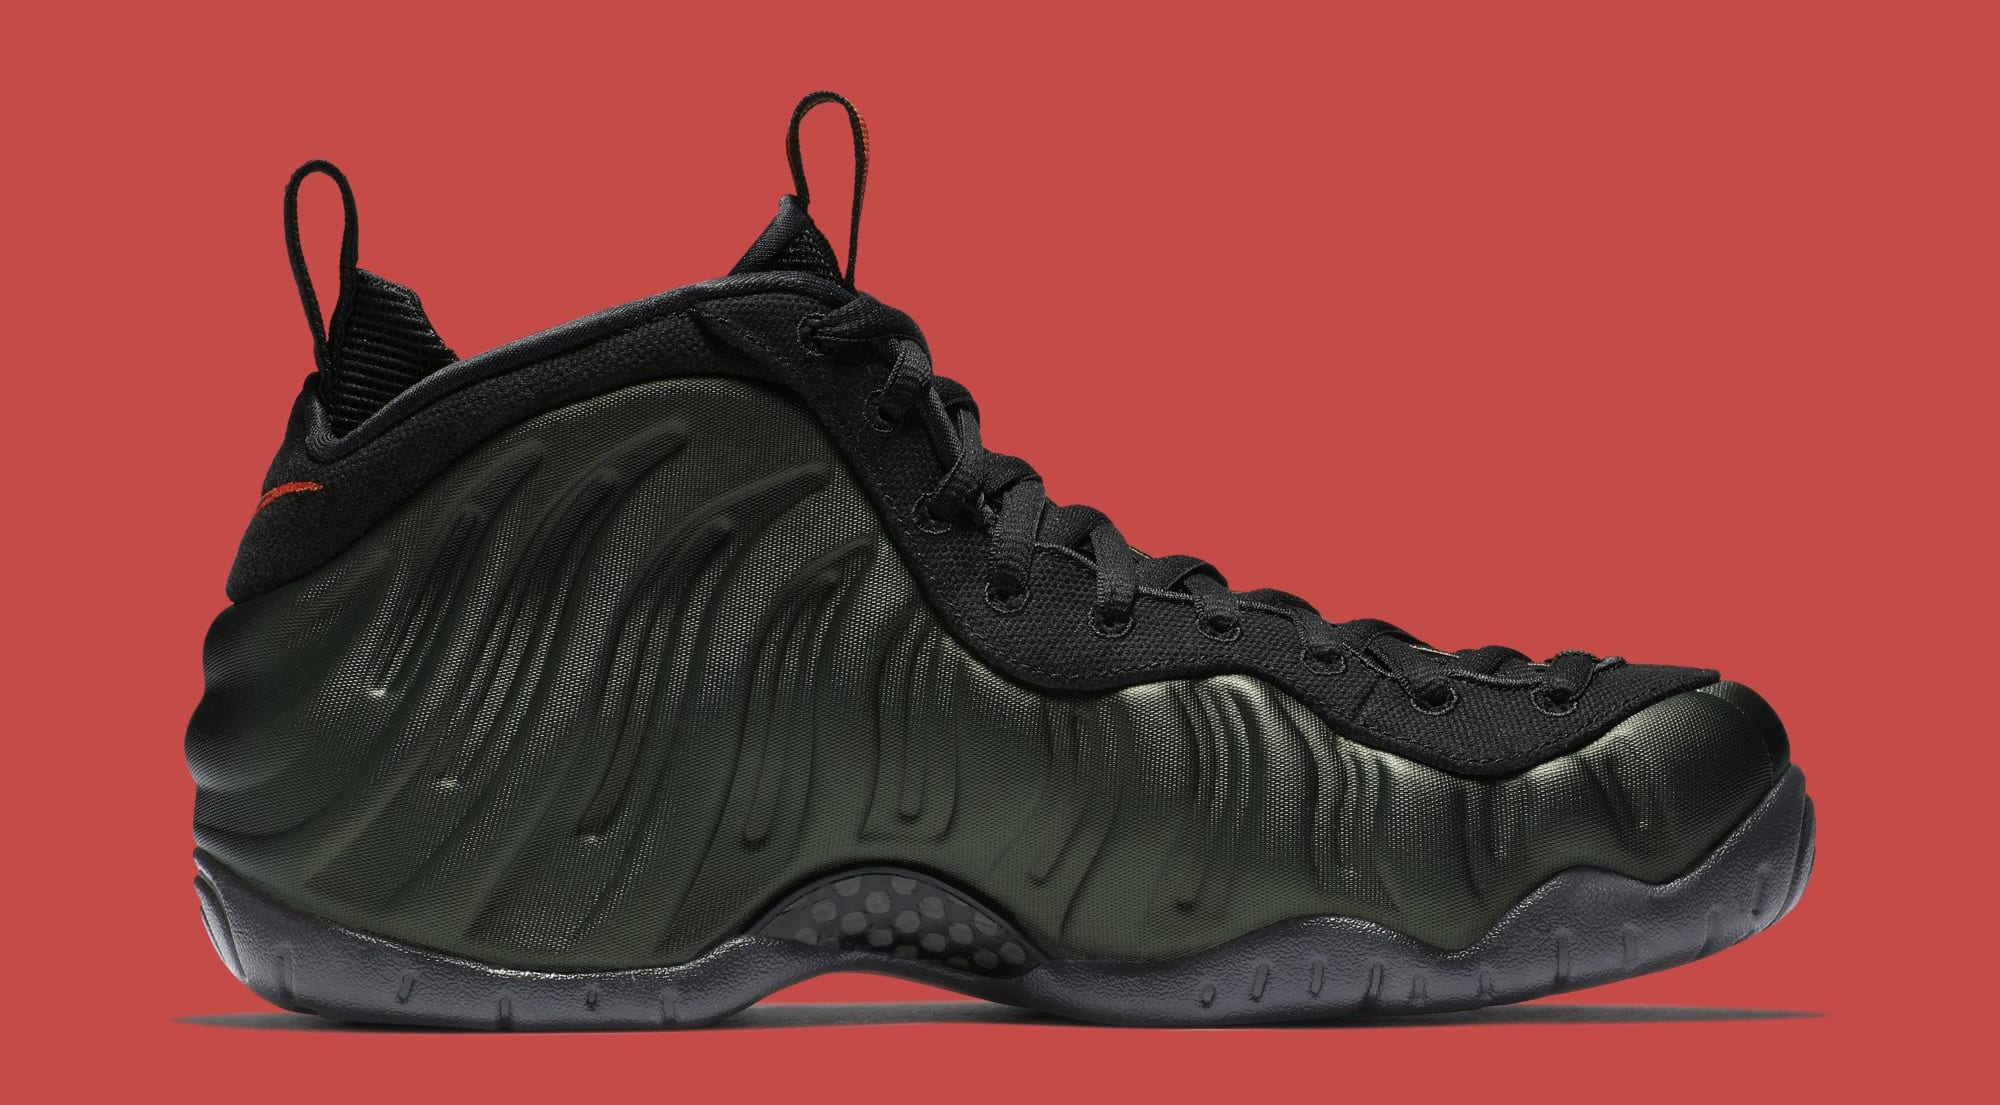 low priced 5e1bf fb0bf Nike Air Foamposite Pro 'Sequoia' Release Date 624041-304 ...